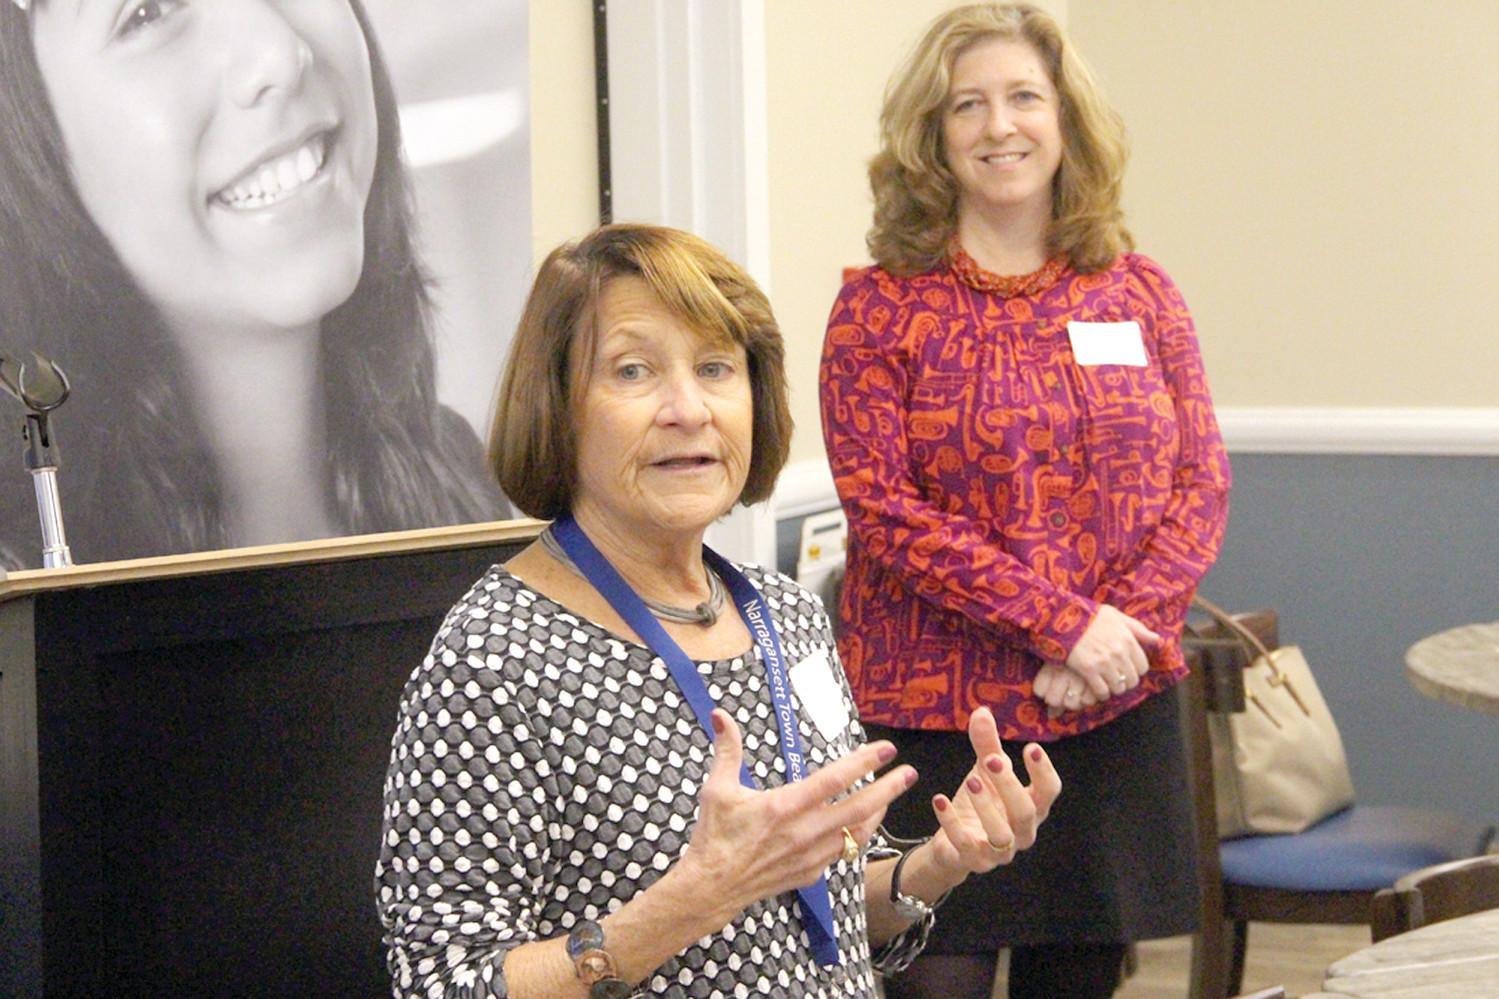 ALL THE NUMBERS COUNT: Karen Ostrowsky, vice chair of the Warwick Coalition to Prevent Child Abuse, introduces Stephanie Geller of Rhode Island Kids Count at the Warwick Data in Your Backyard report presented Wednesday morning.